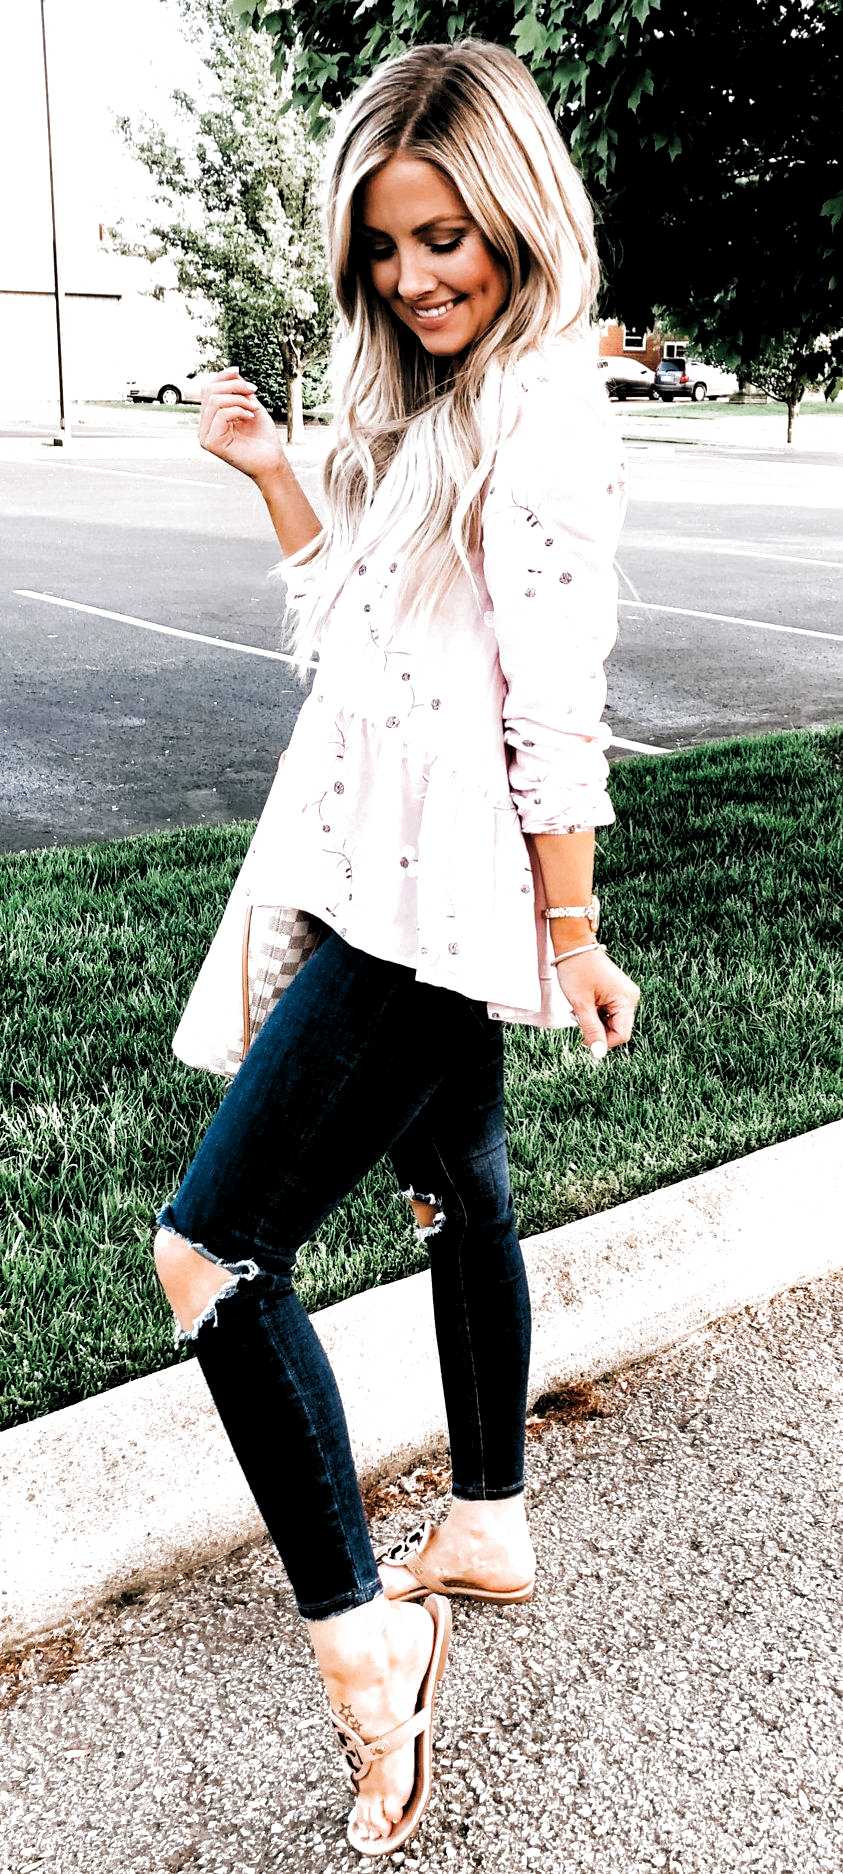 Photo of Summer outfits ideas women 30s or college teens? Plenty of cute & casually fanta…